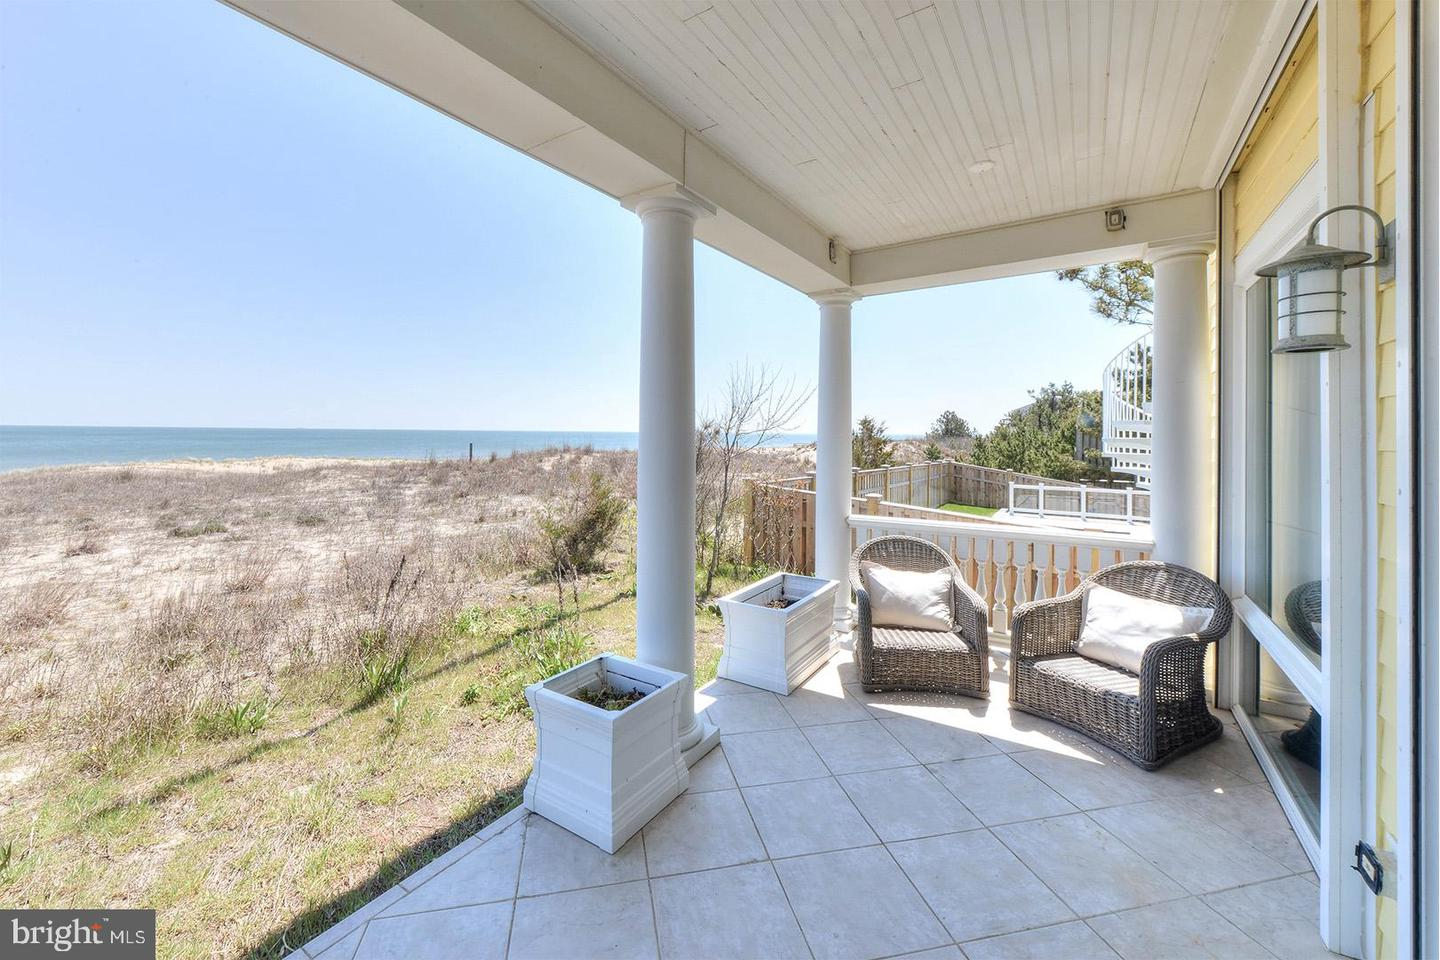 DESU159700-304100431399-2020-05-01-17-16-51 4 Prospect St | Rehoboth Beach, DE Real Estate For Sale | MLS# Desu159700  - Lee Ann Group